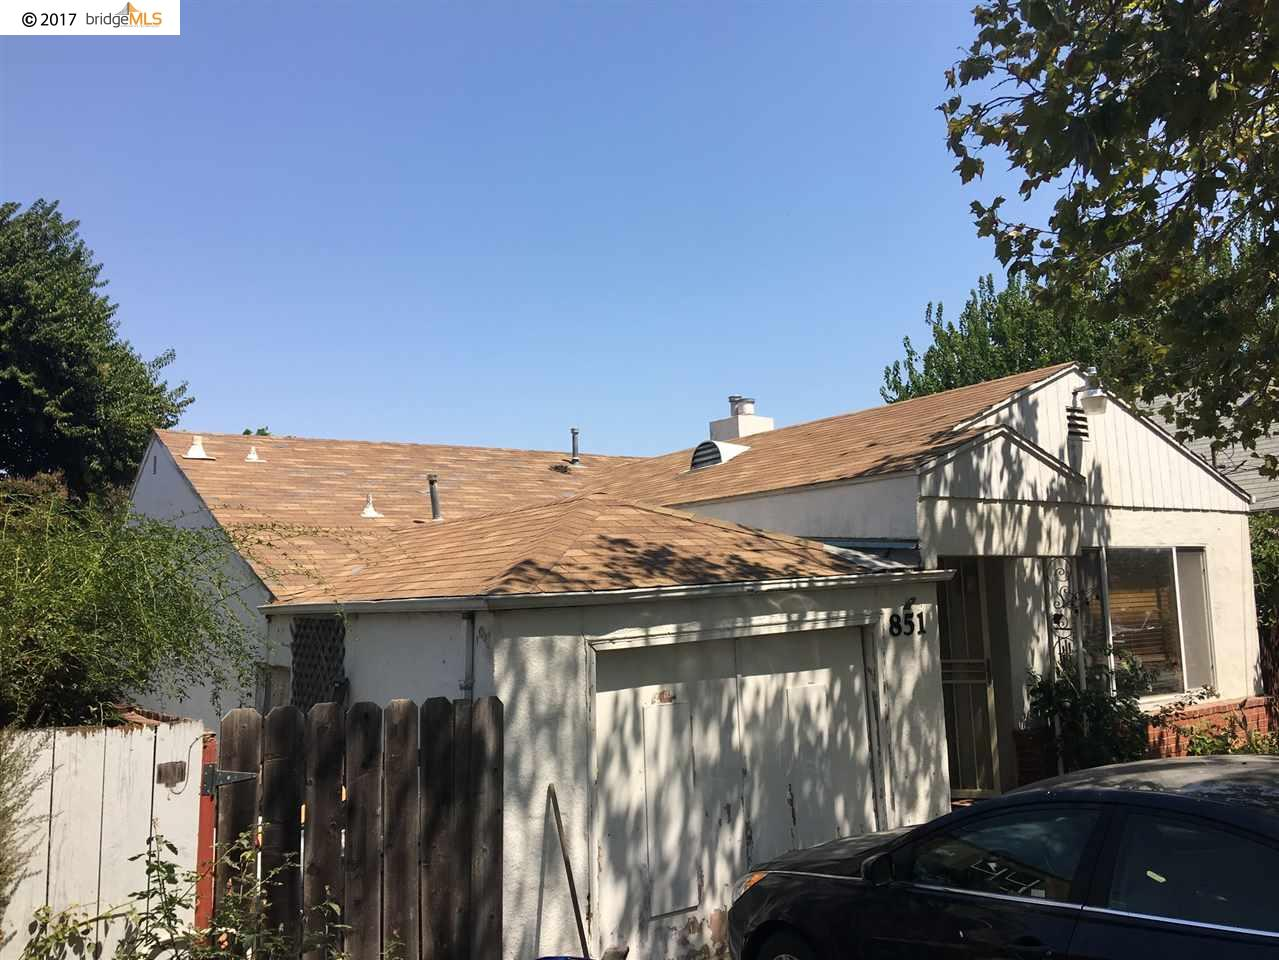 851 Central Ave, PITTSBURG, CA 94565